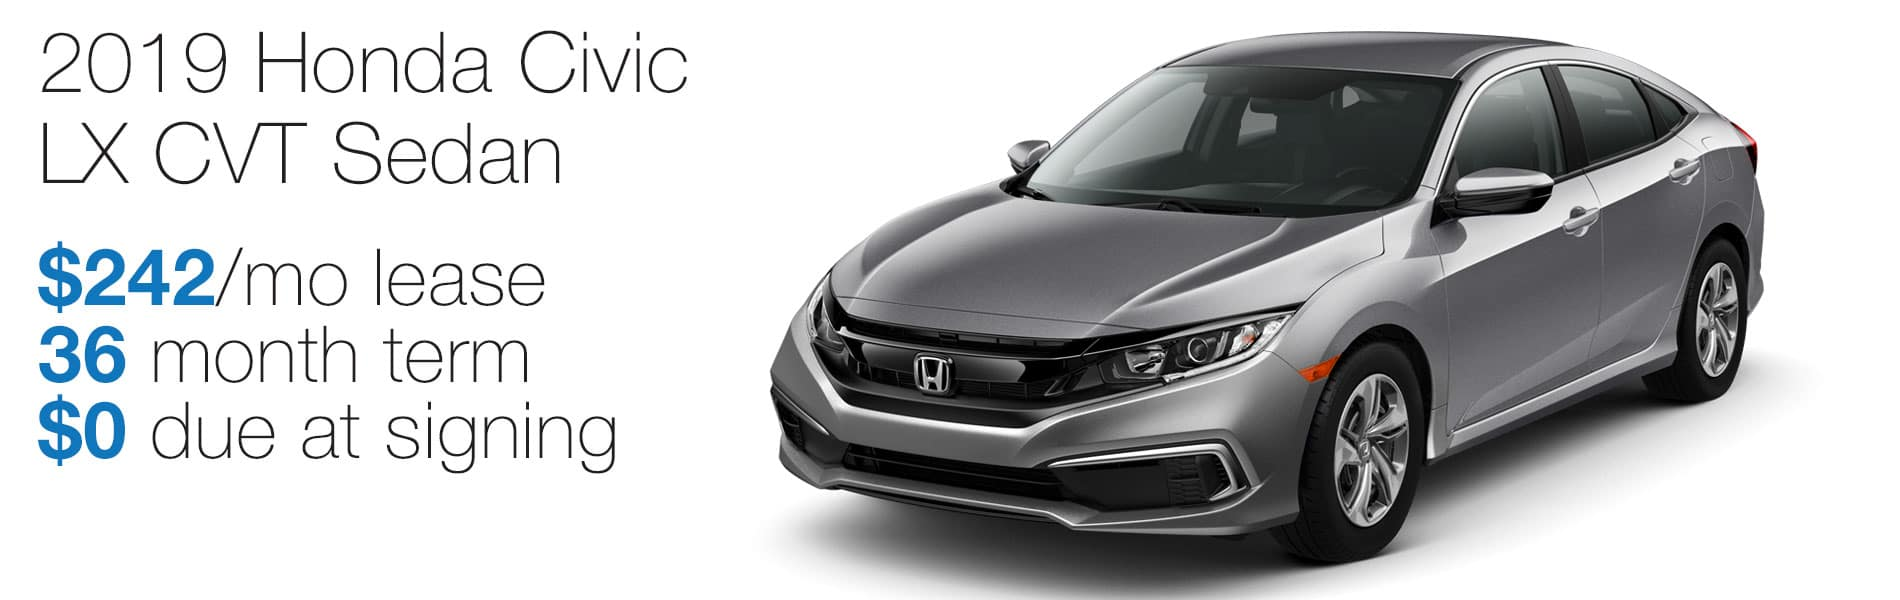 Lease a 2019 Honda Civic LX for $242 per month lease with $0 due at signing